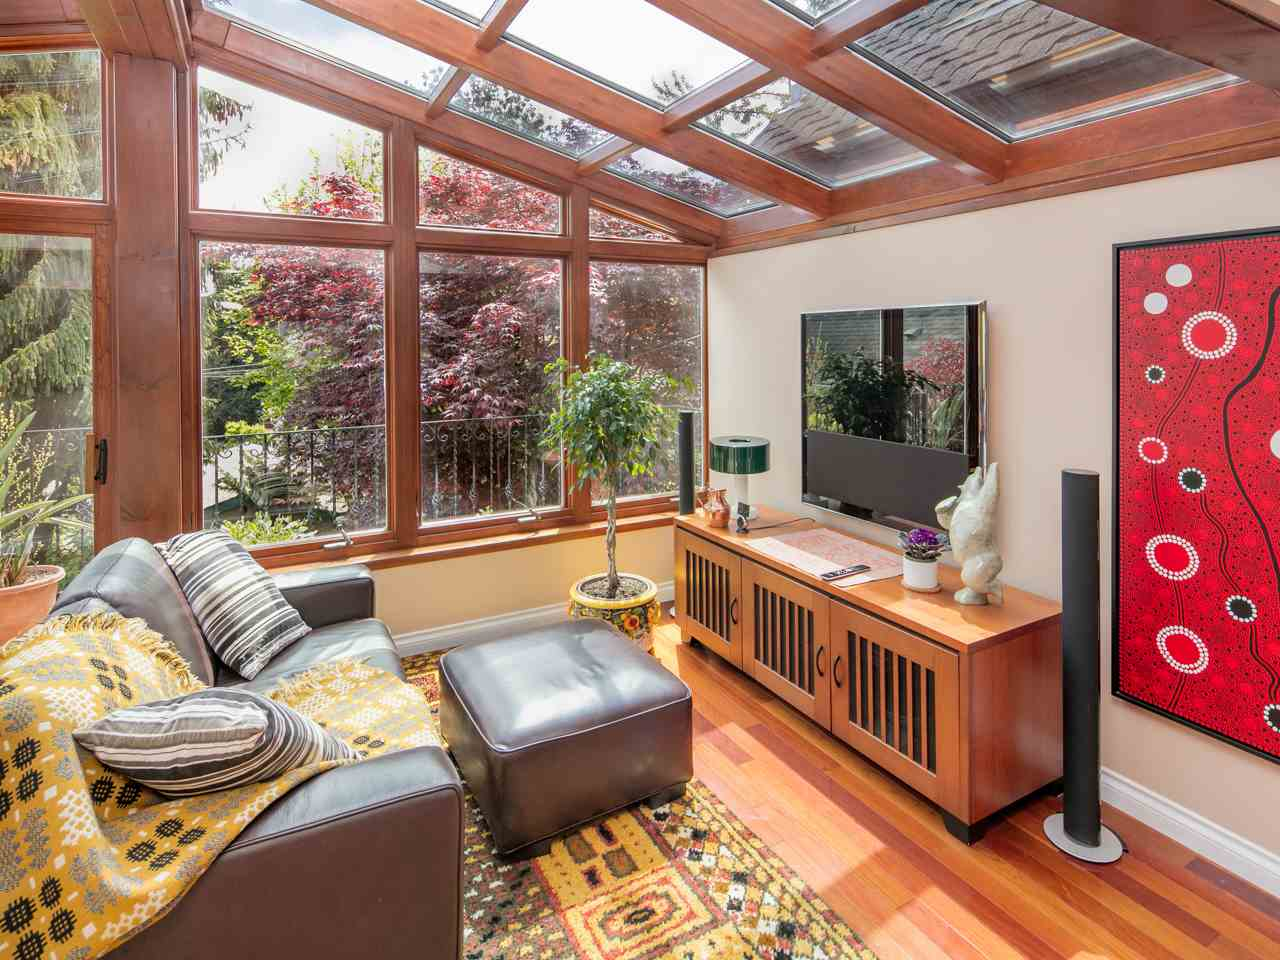 Photo 9: 748 UNION Street in Vancouver: Mount Pleasant VE House for sale (Vancouver East)  : MLS® # R2168904